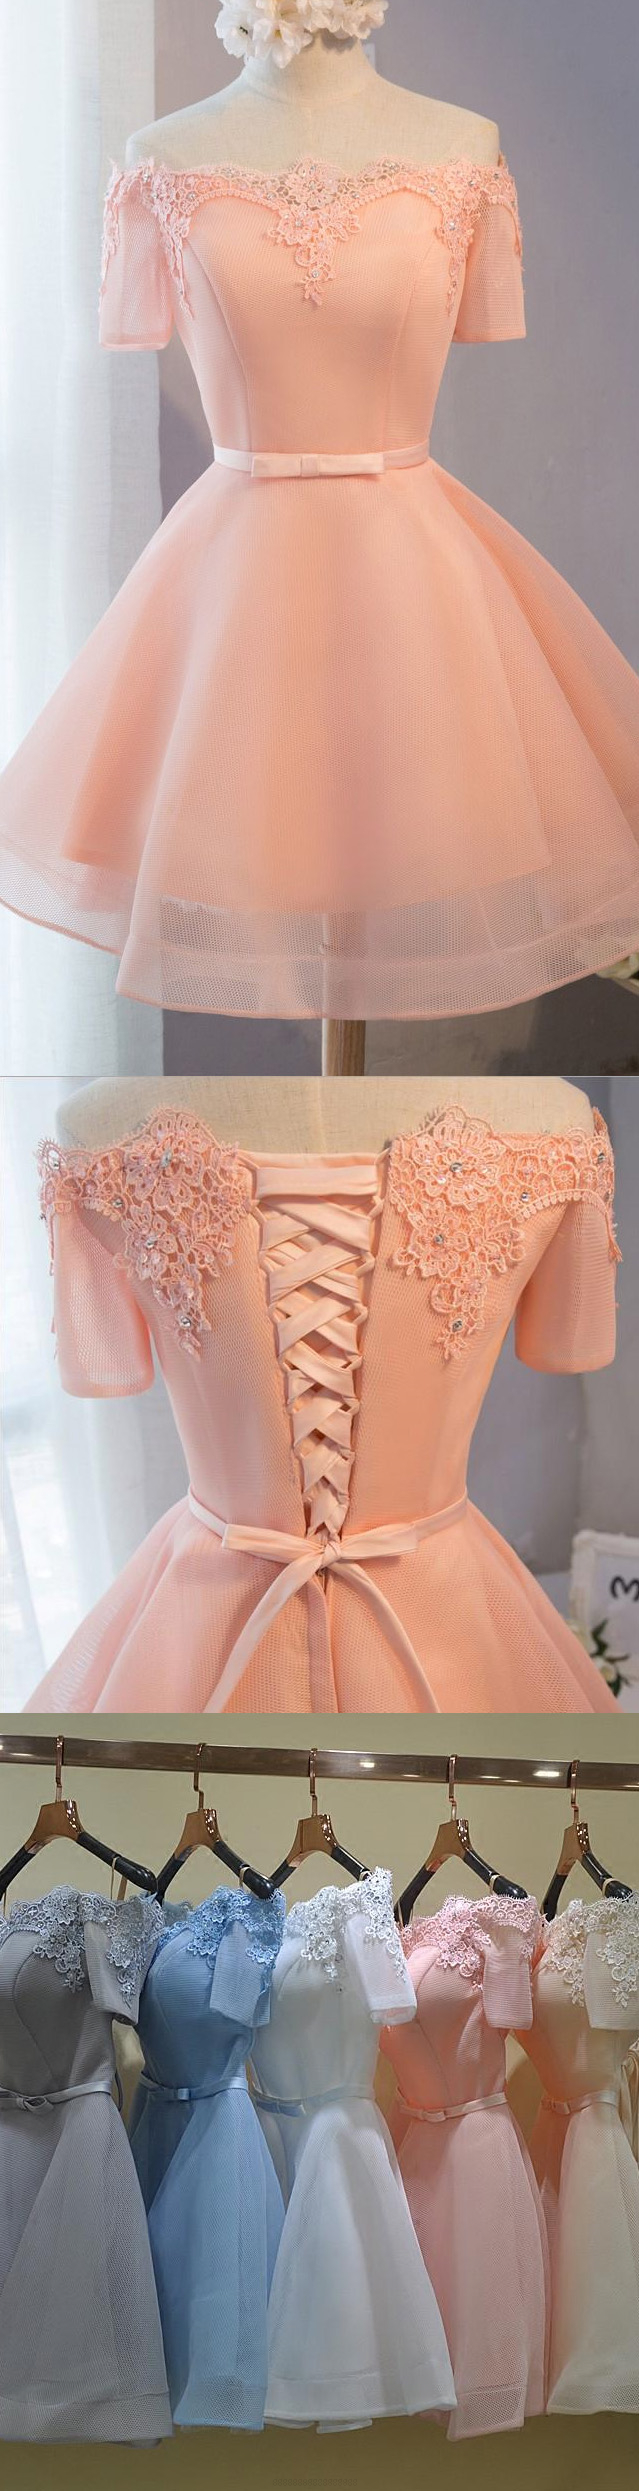 Prom Dresses 2017, Short Prom Dresses, 2017 Prom Dresses, Pink Prom Dresses, Prom Dresses Short, Homecoming Dresses 2017, Short Pink Prom Dresses, Prom Short Dresses, Short Homecoming Dresses, Off-the-Shoulder Party Dresses, Pink Party Dresses, Pink Off-the-Shoulder Homecoming Dresses, Pink Off-the-Shoulder Party Dresses, 2017 Homecoming Dress Off-the-shoulder Pink Short Prom Dress Party Dress